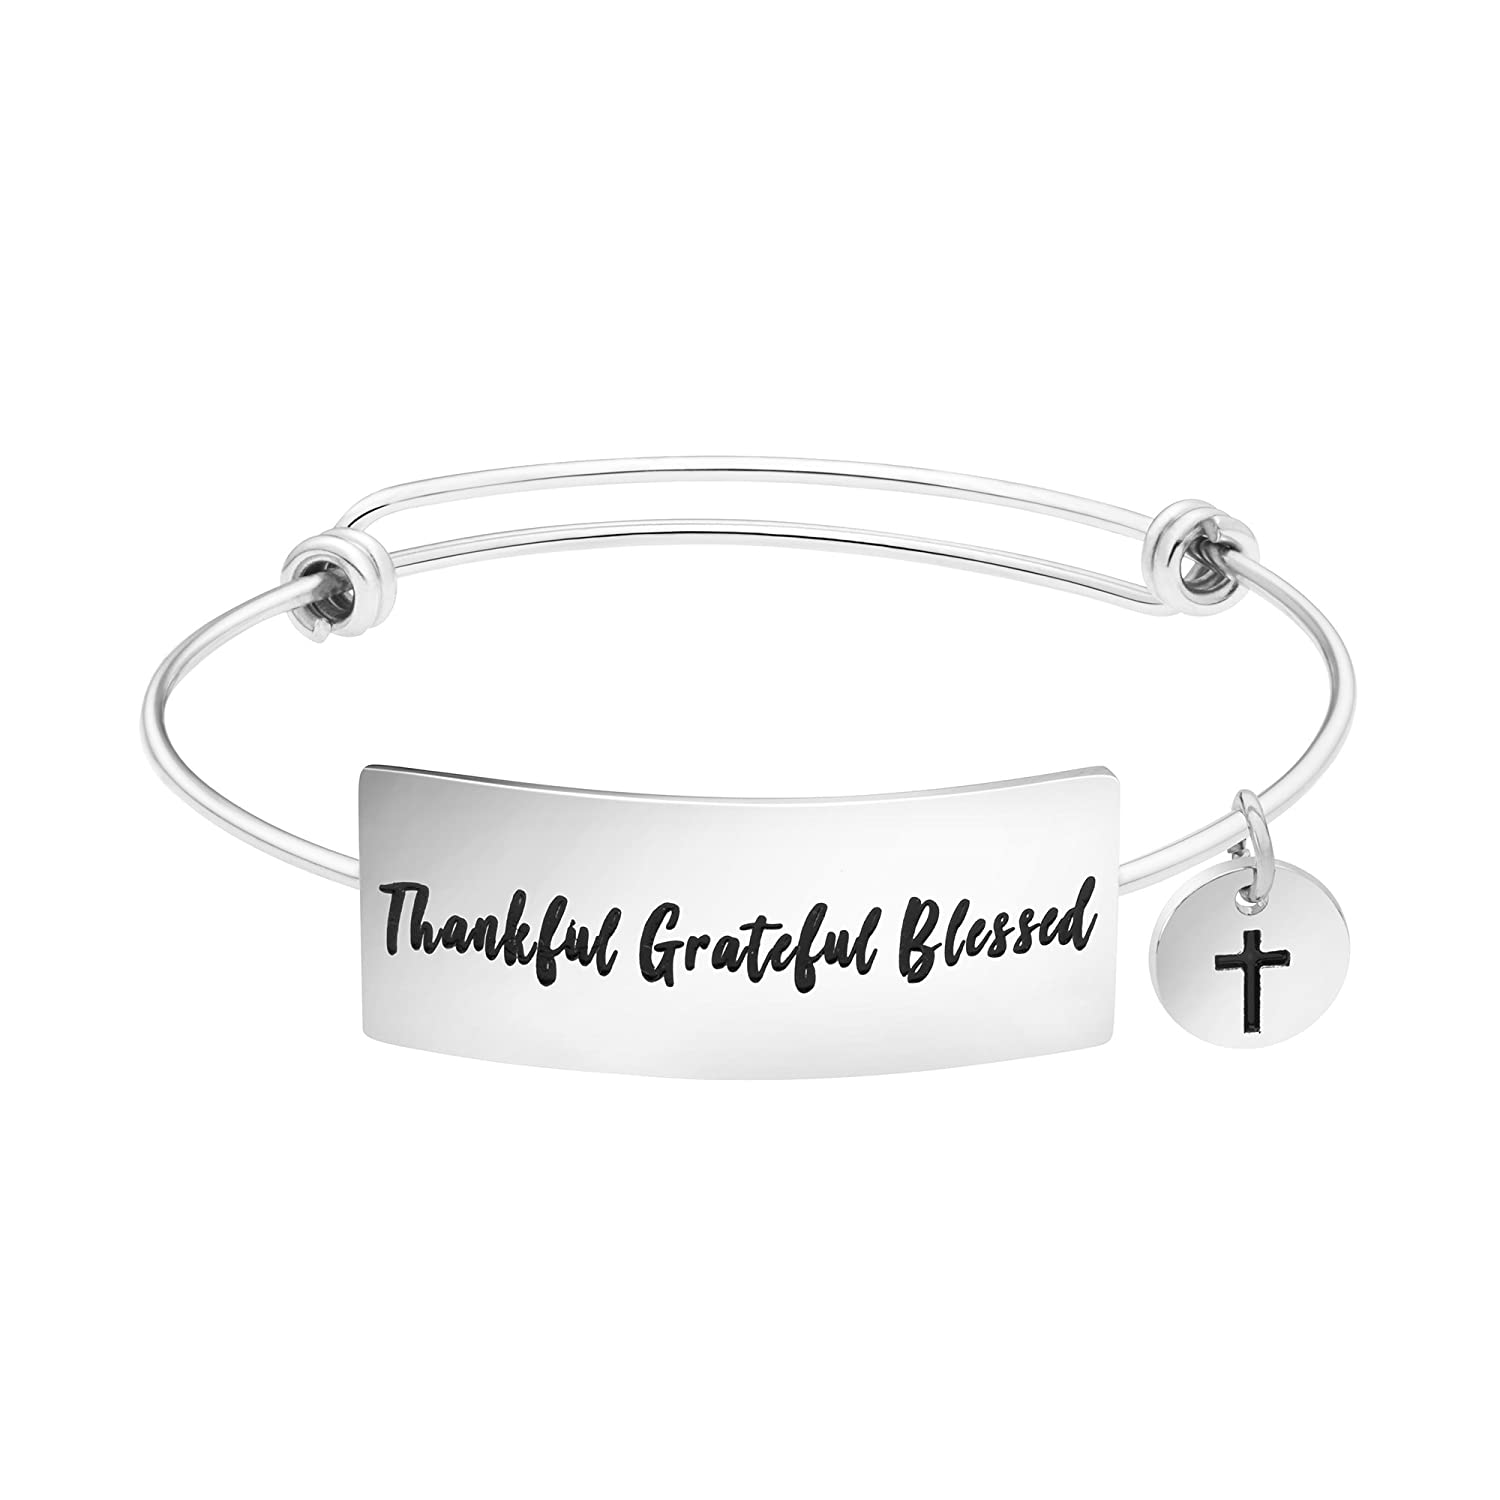 Yiyang Mantra Bracelet Inspirational Expressions Jewelry Unique Thanksgiving Day Gifts